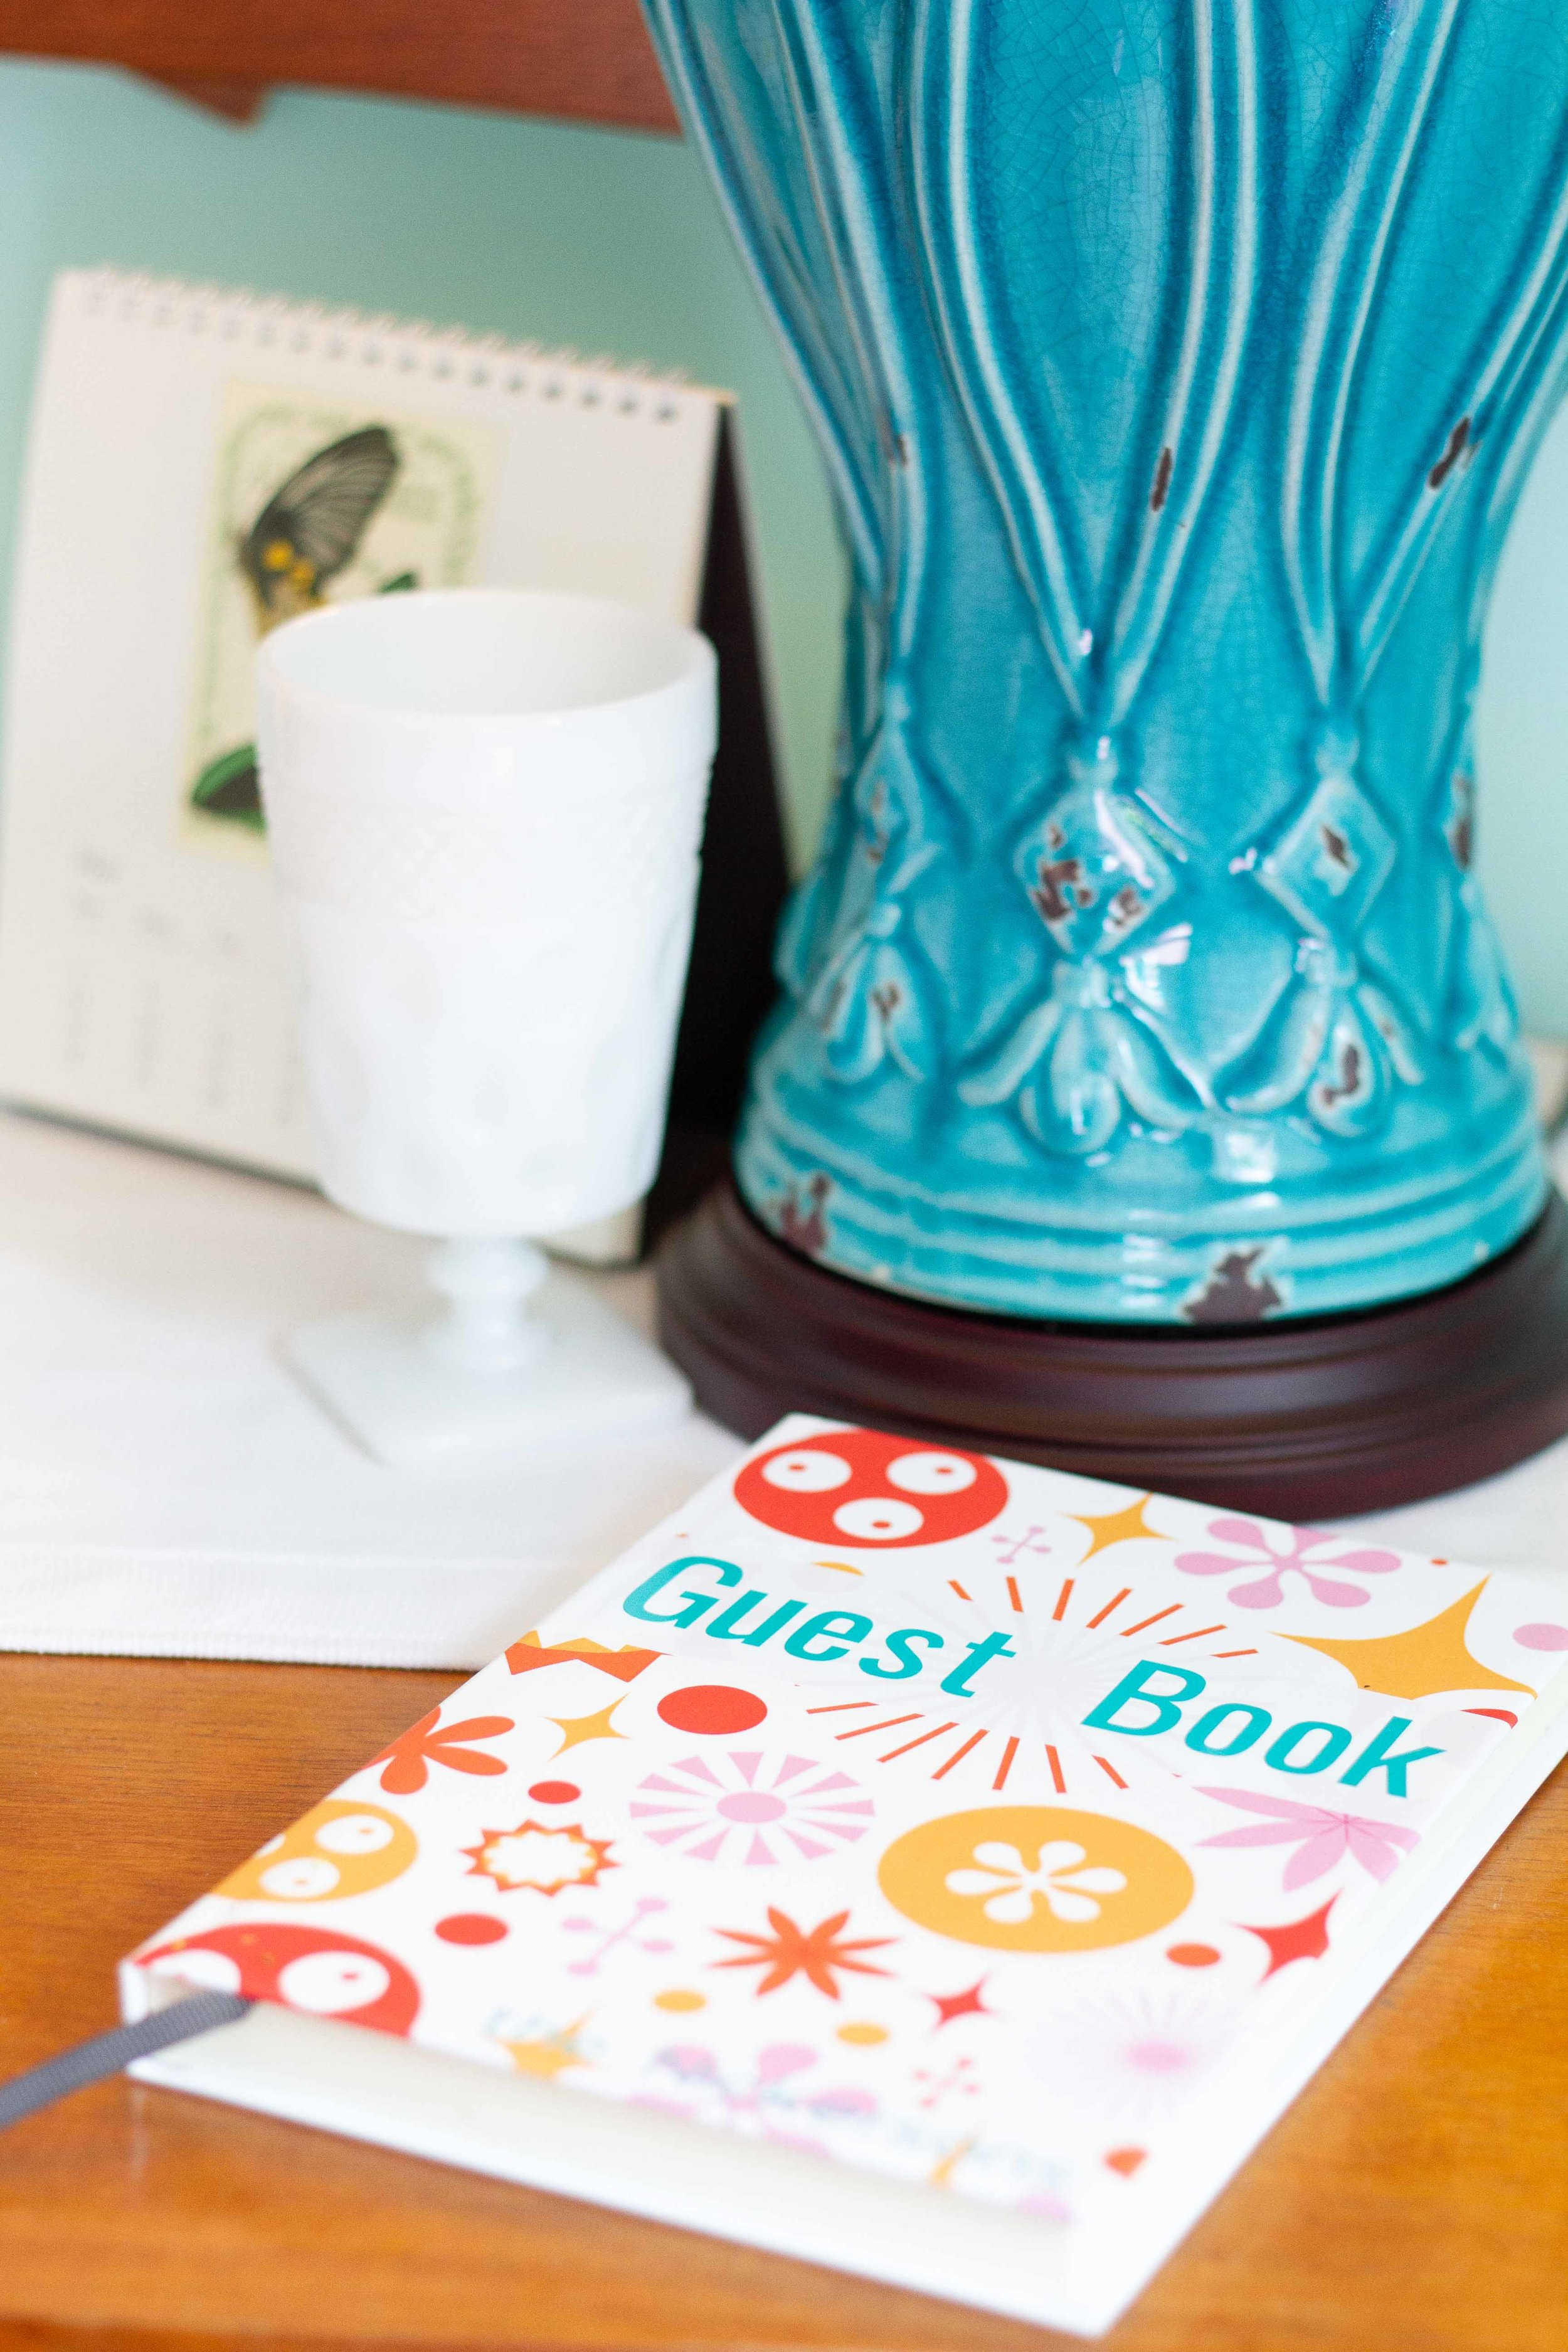 A blank book became a guest book with the help of my Cricut.